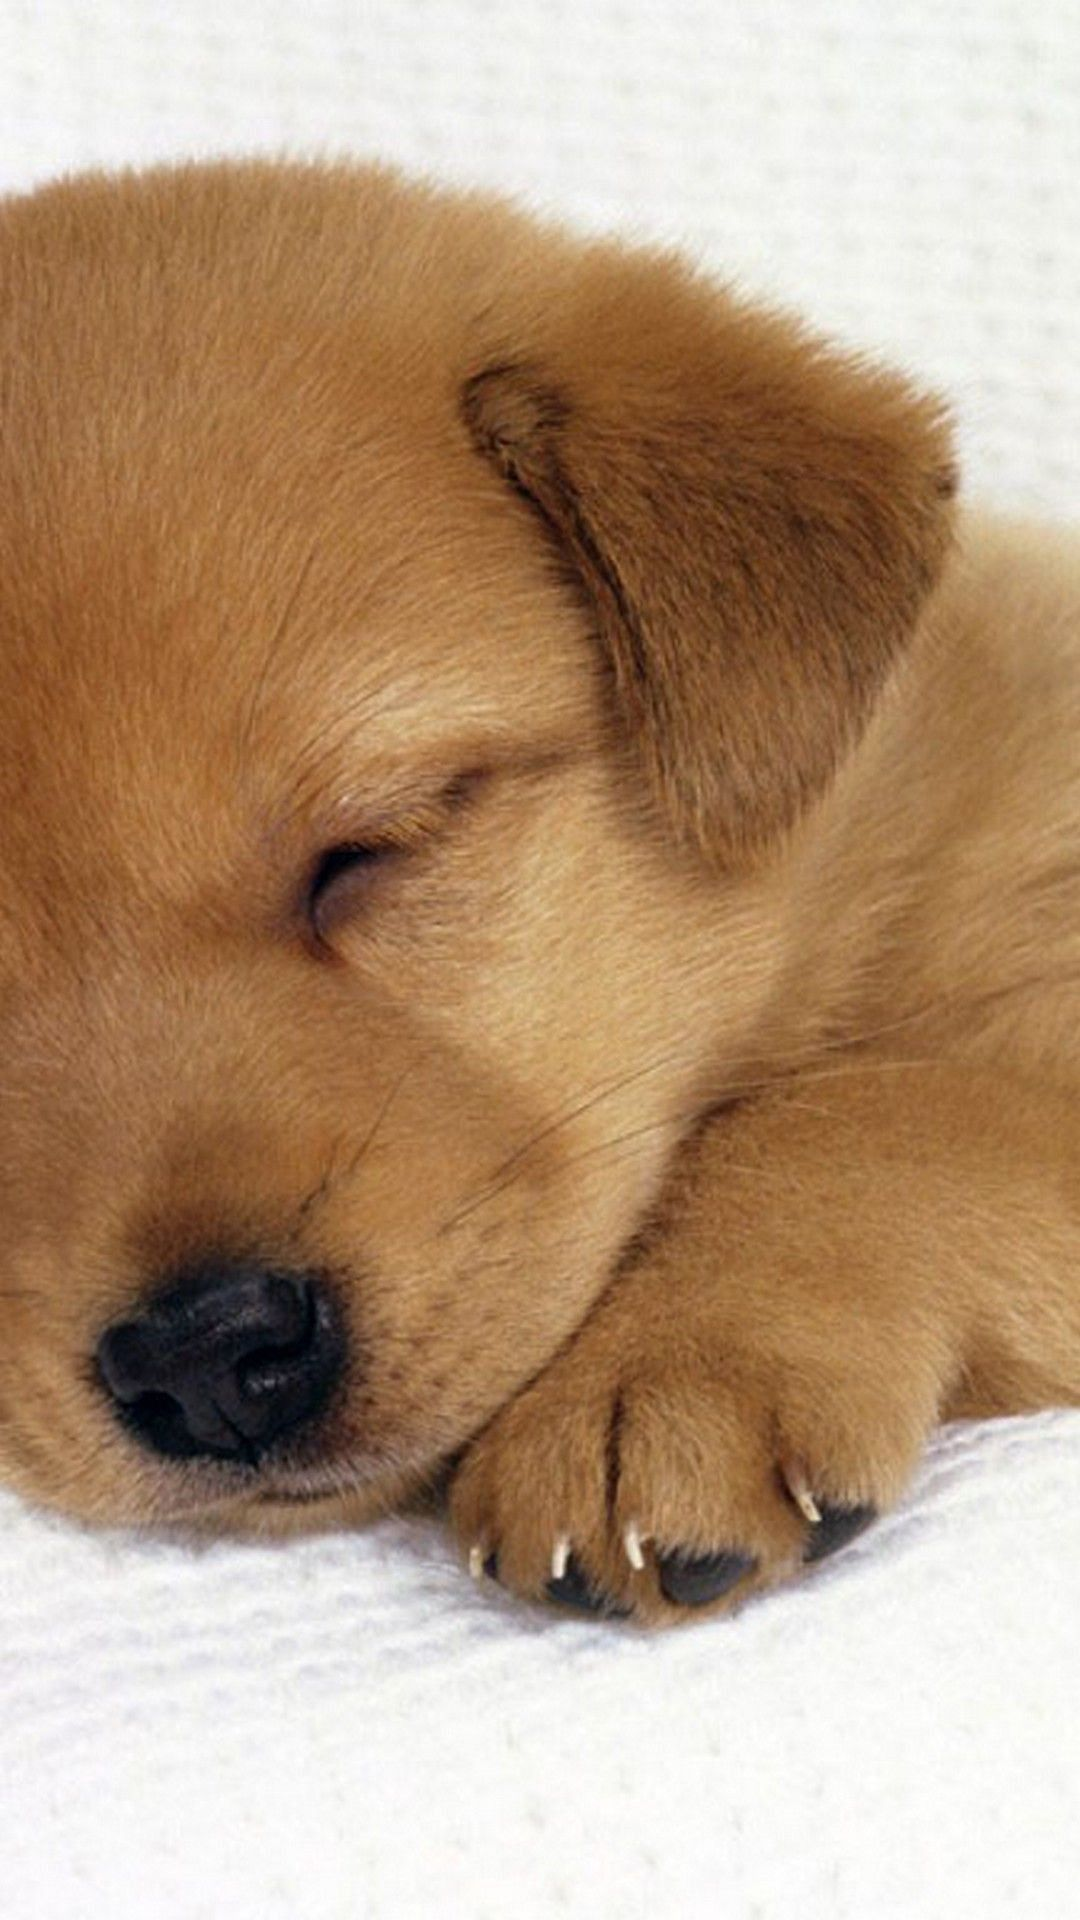 Baby Dog Wallpaper Ios Puppy Backgrounds Puppy Wallpaper Iphone Cute Puppies